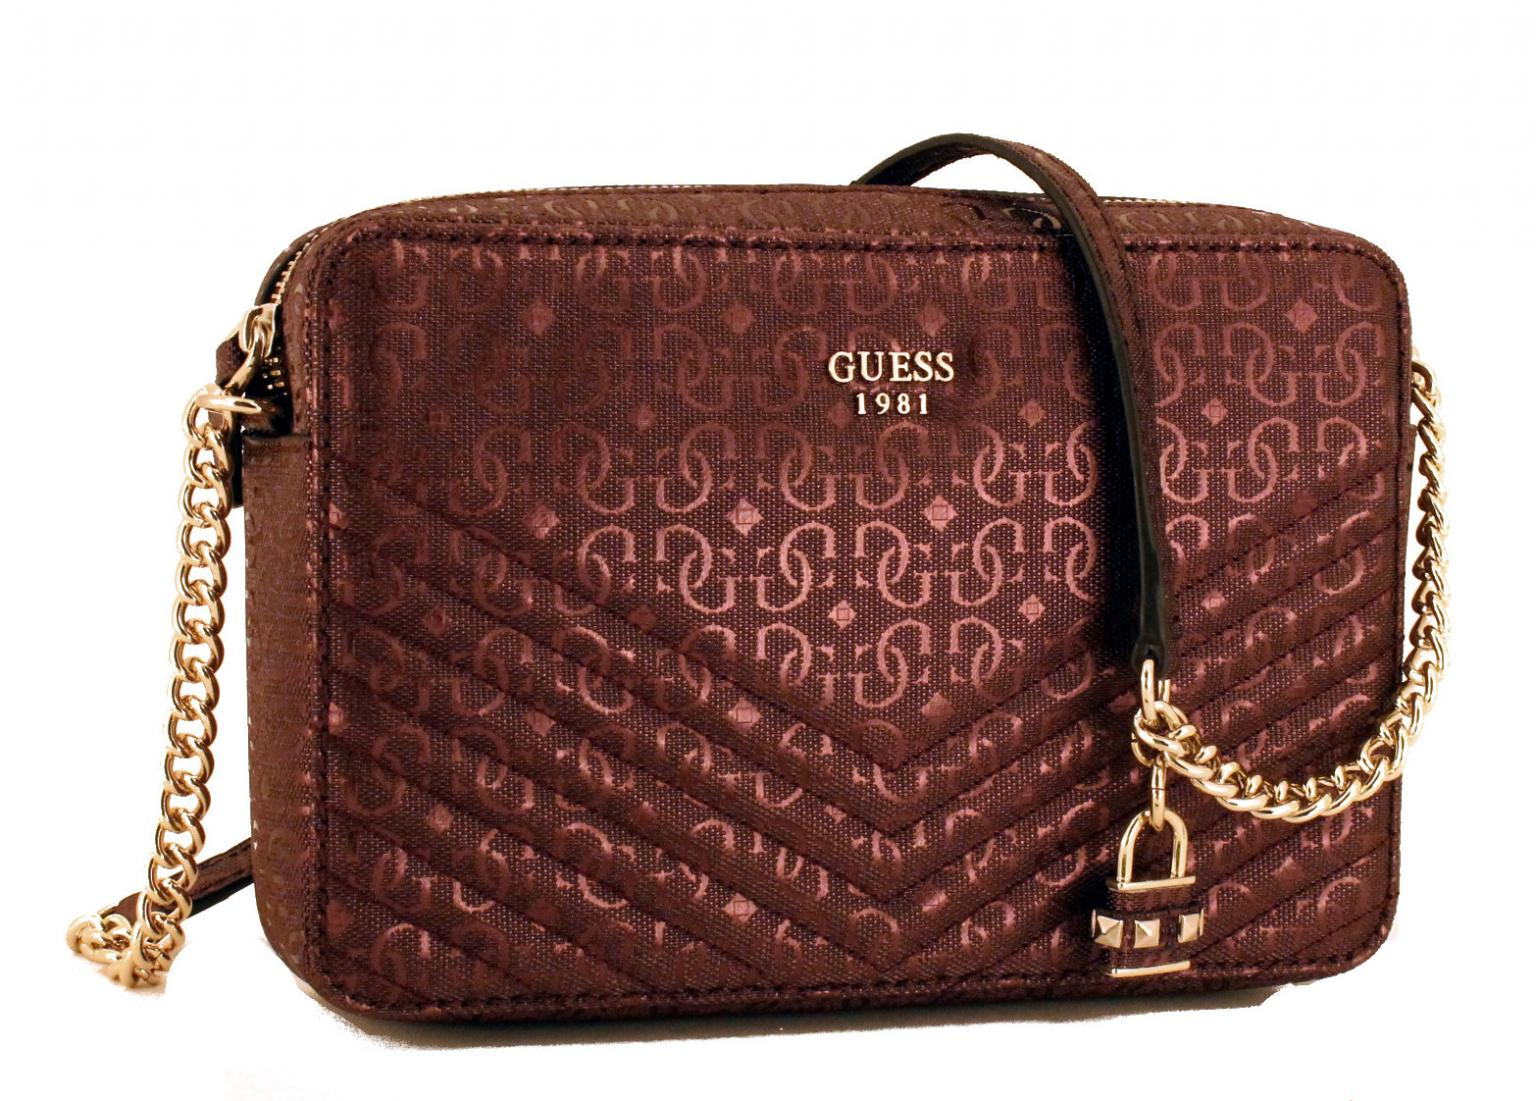 Guess Handtasche Halley Bordeaux Rot Kette Gold - Bags & more